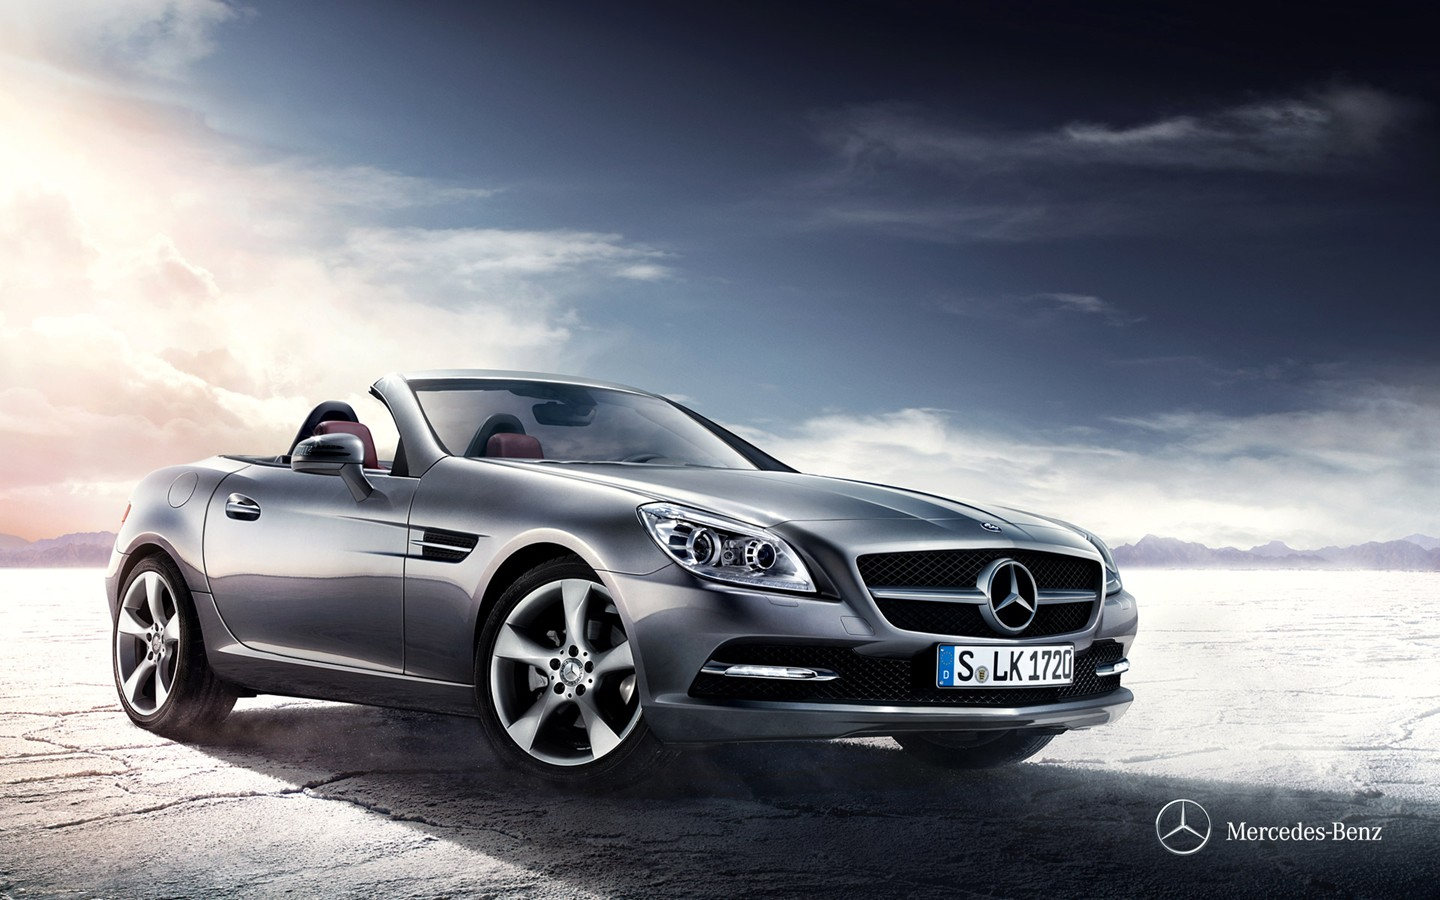 Mercedes Benz SLK Wallpaper HD Photos HDwallsize Wallpaper in Pixels 1440x900